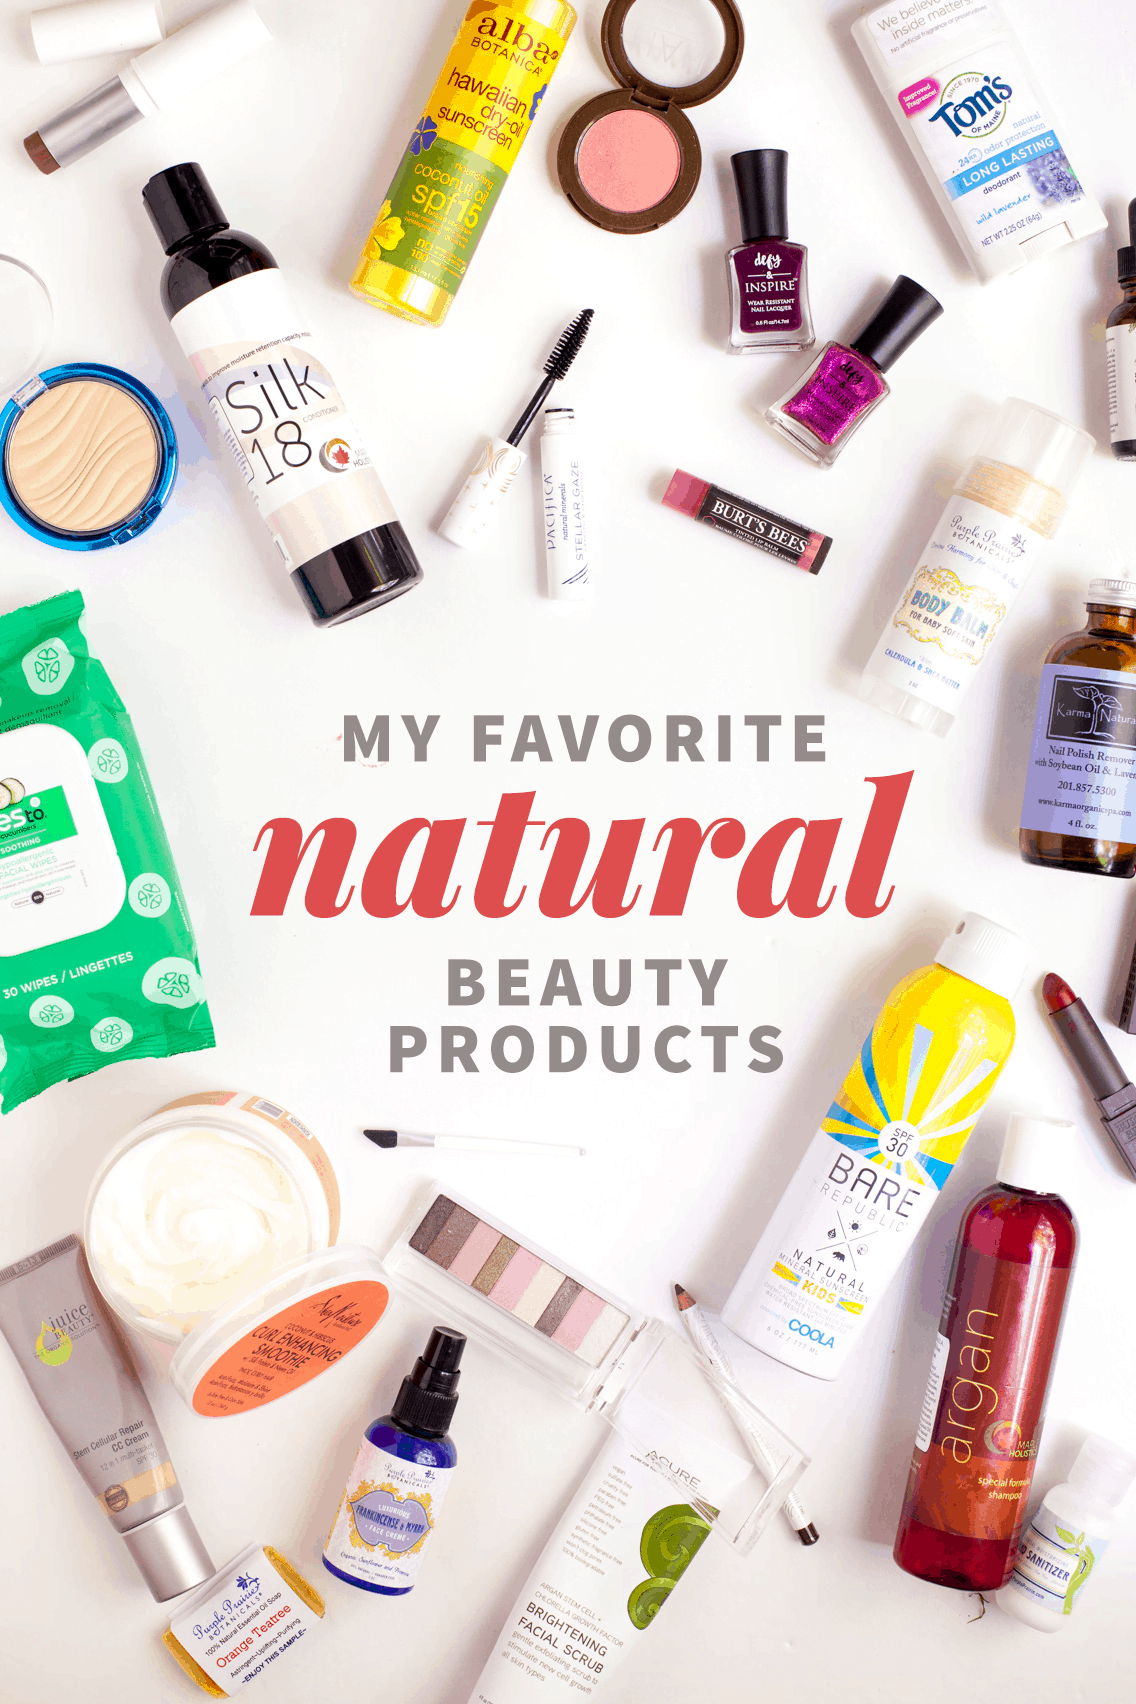 My Favorite Natural Beauty Products | Wholefully